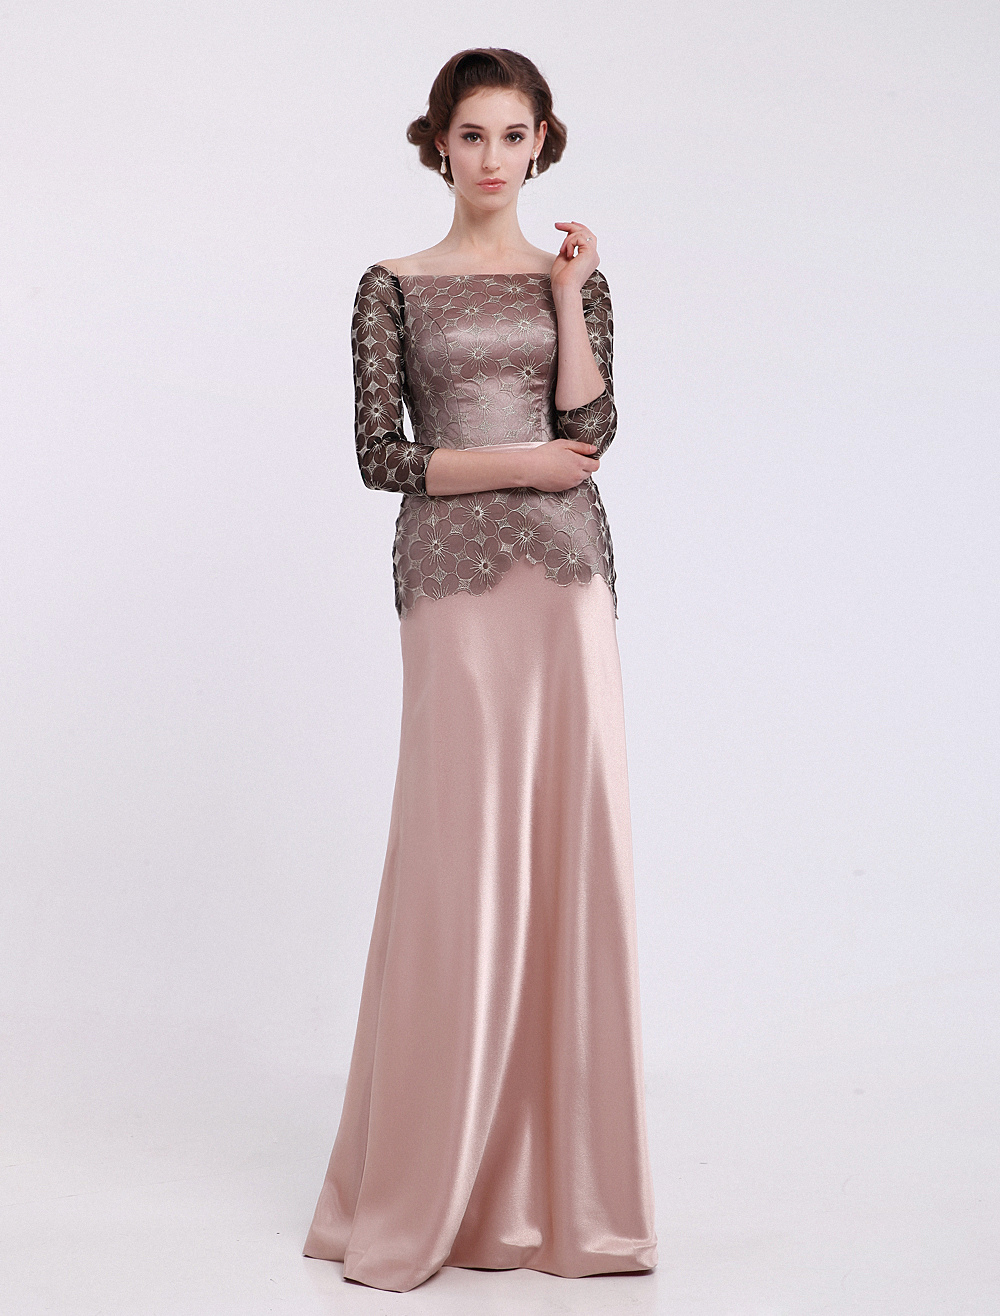 Blushing Pink Sheath Bateau Neck Lace Dress For Mother of the Bride with 34 Length Sleeves $139.99 AT vintagedancer.com